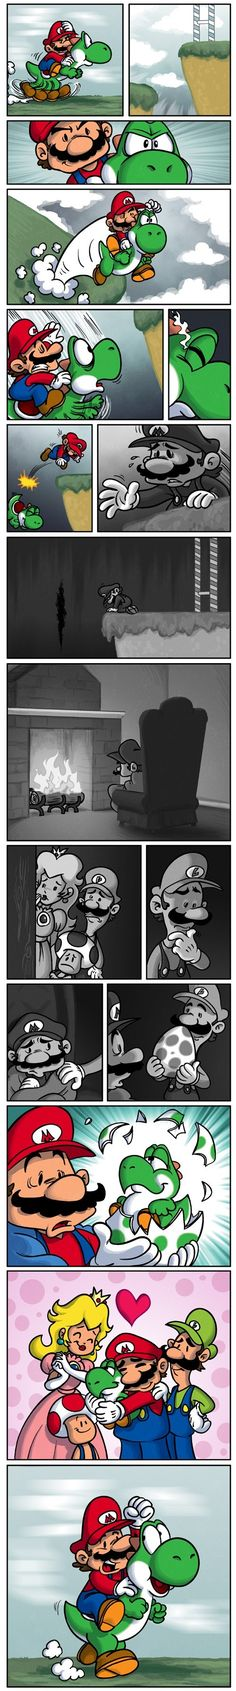 :(  I alway feel jerk to jump out my favorite character Yoshi..... why that high tall is so high that yoshi can't get over that. Video game create this is evil -__-